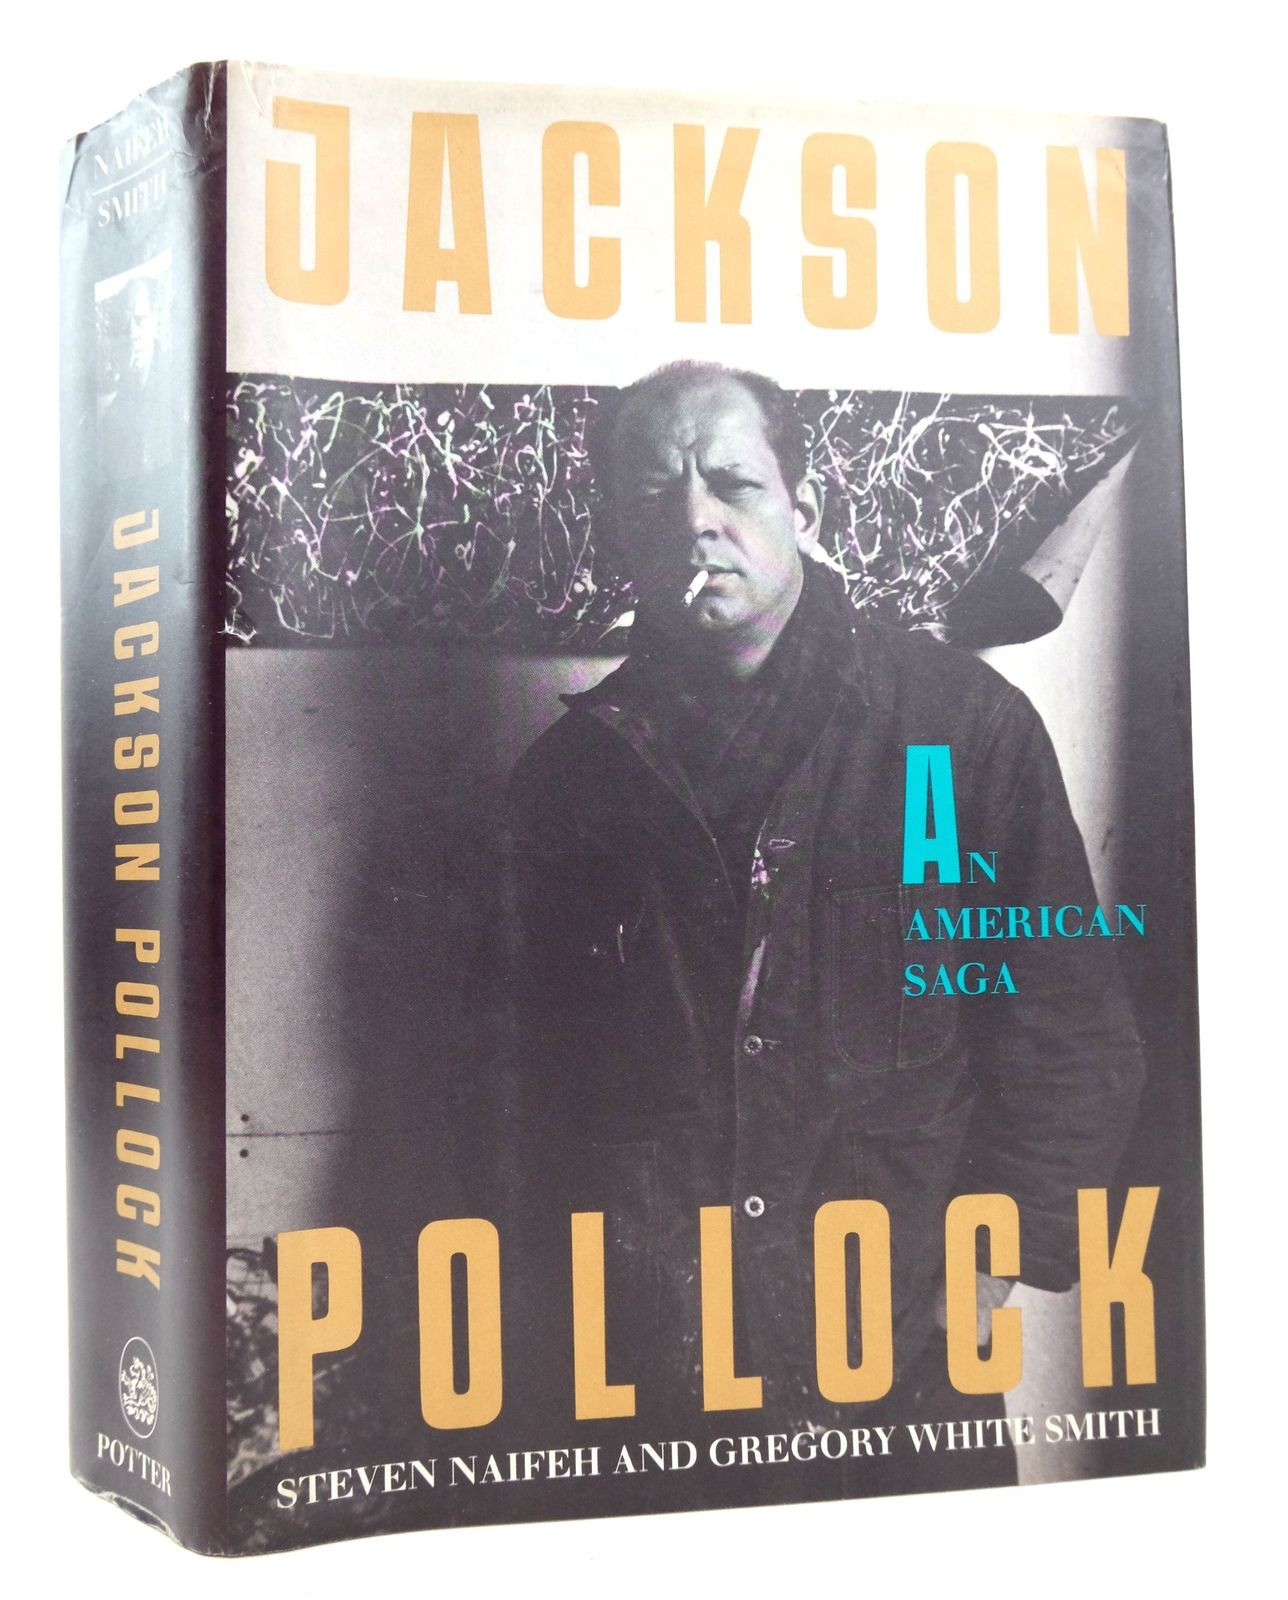 Photo of JACKSON POLLOCK: AN AMERICAN SAGA written by Naifeh, Steven Smith, Gregory White published by Clarkson N. Potter Inc. (STOCK CODE: 1819310)  for sale by Stella & Rose's Books